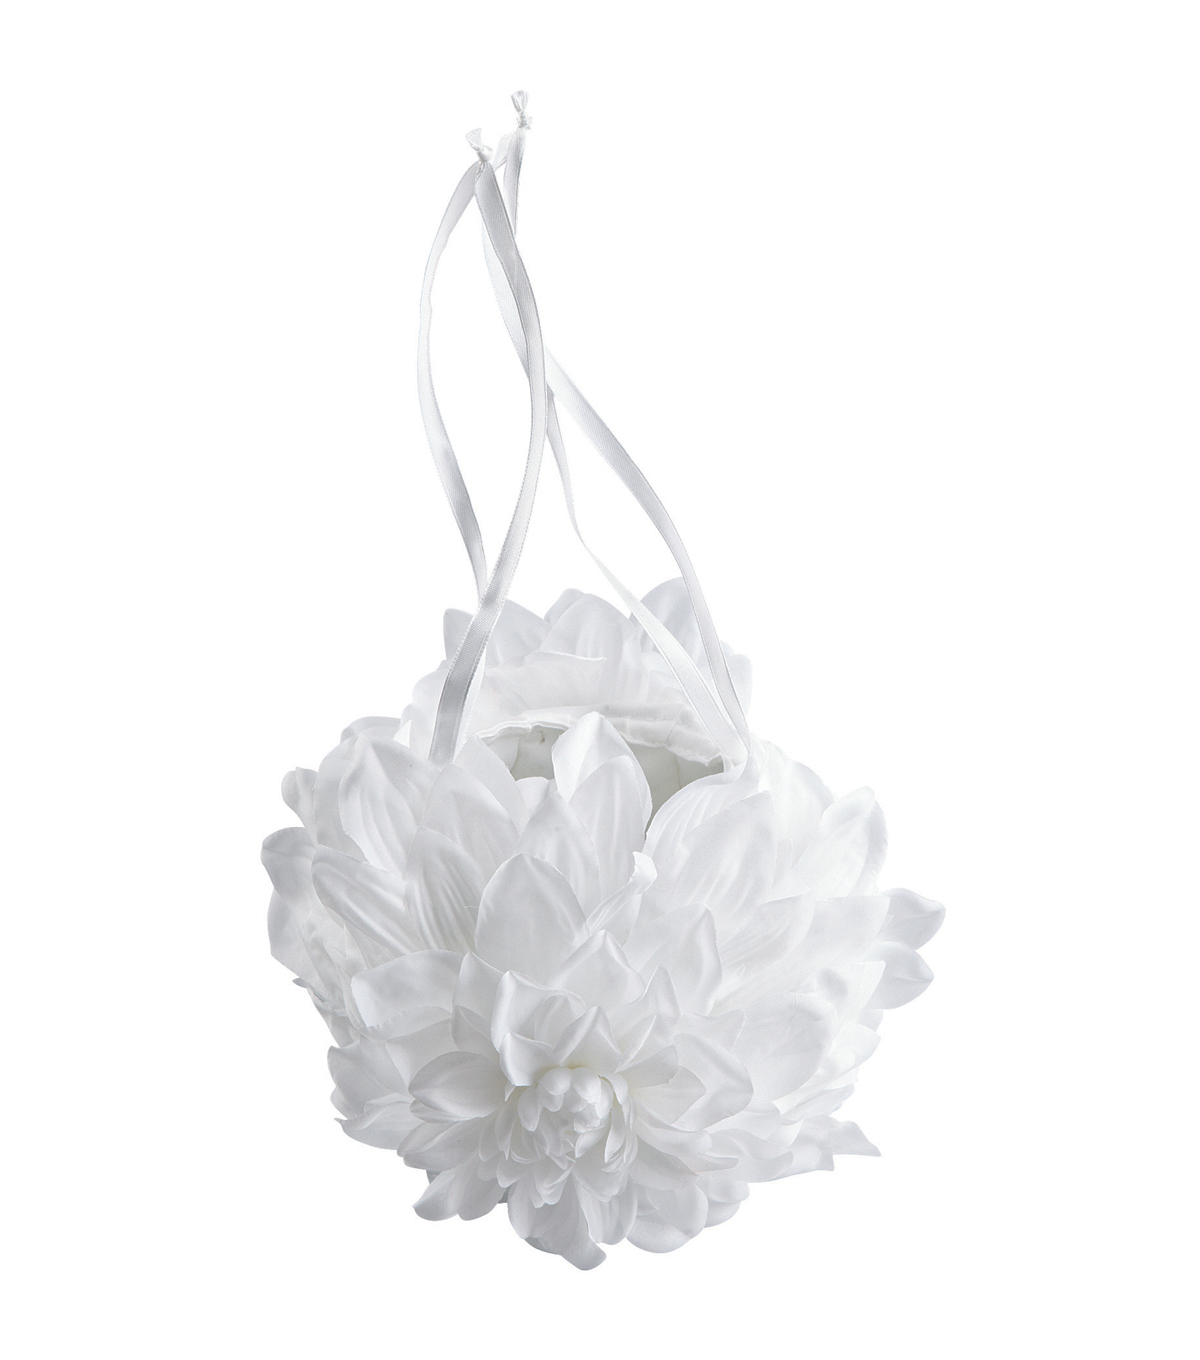 Wilton 3\u0022X5\u0022 Gardenia Wedding Flower Basket-White